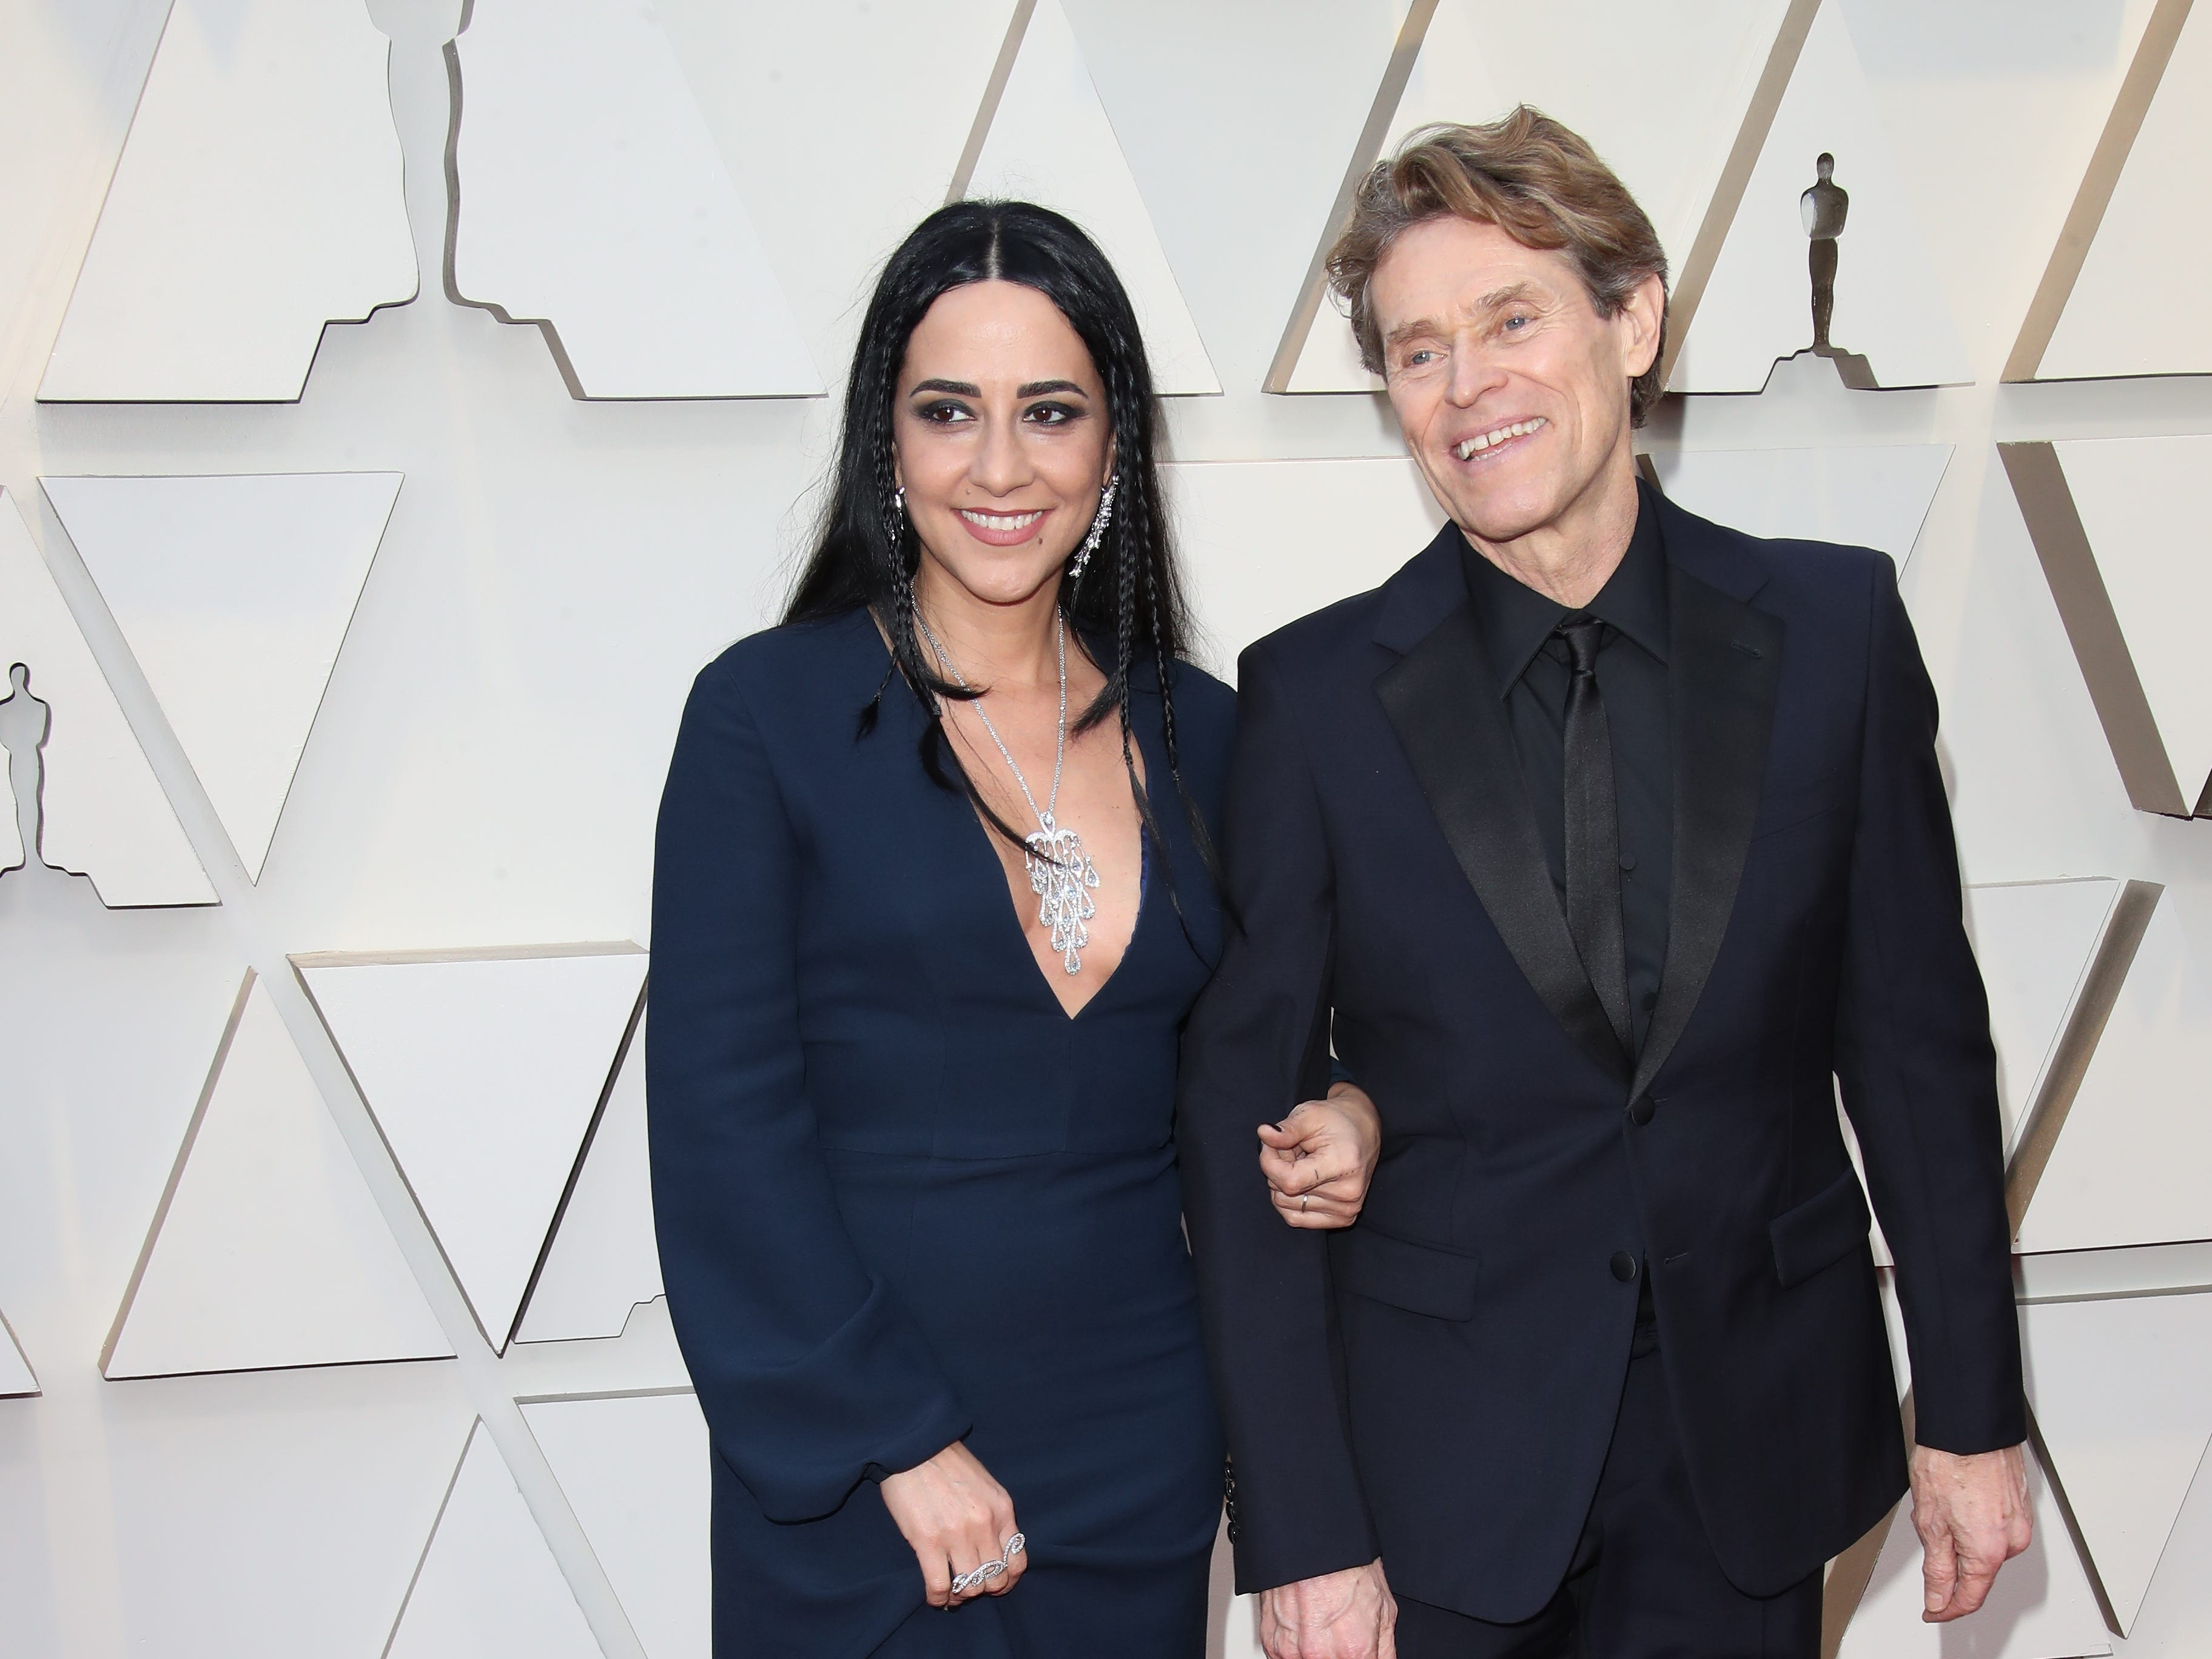 February 24, 2019; Los Angeles, CA, USA; Giada Colagrande, left and Willem Dafoe arrive at the 91st Academy Awards at the Dolby Theatre. Mandatory Credit: Dan MacMedan-USA TODAY NETWORK (Via OlyDrop)